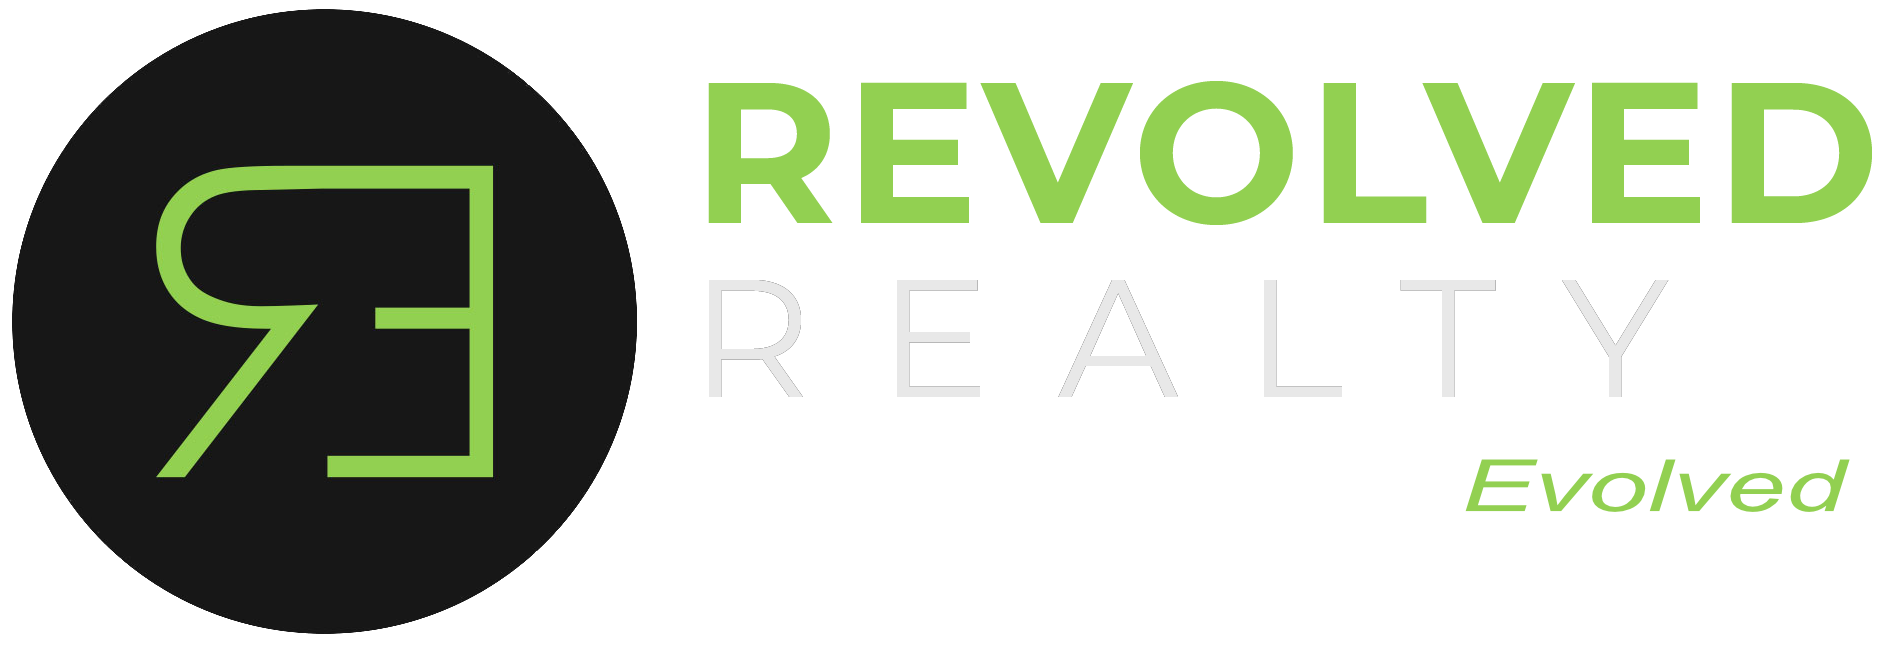 Revolved Realty is a Flat Fee Listing company, saving our clients in Huntsville, Athens, Decatur, North Alabama thousands of dollars when we list and sell their home.